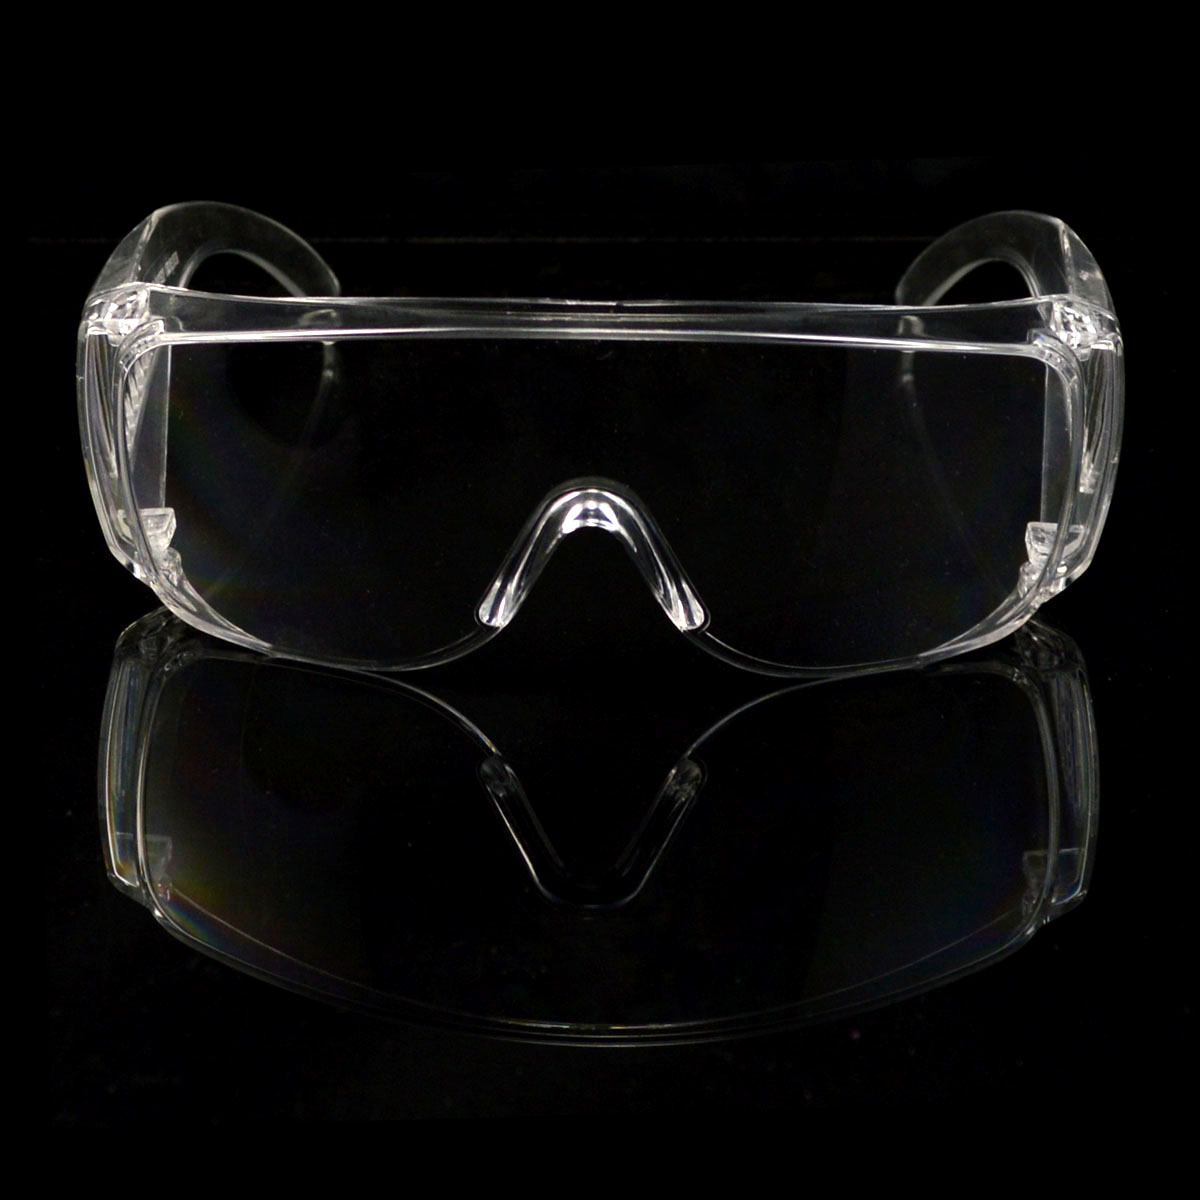 EN166F Anti-weep anti-fog chemical resistant medical eye protection safety googles with prescription glasses